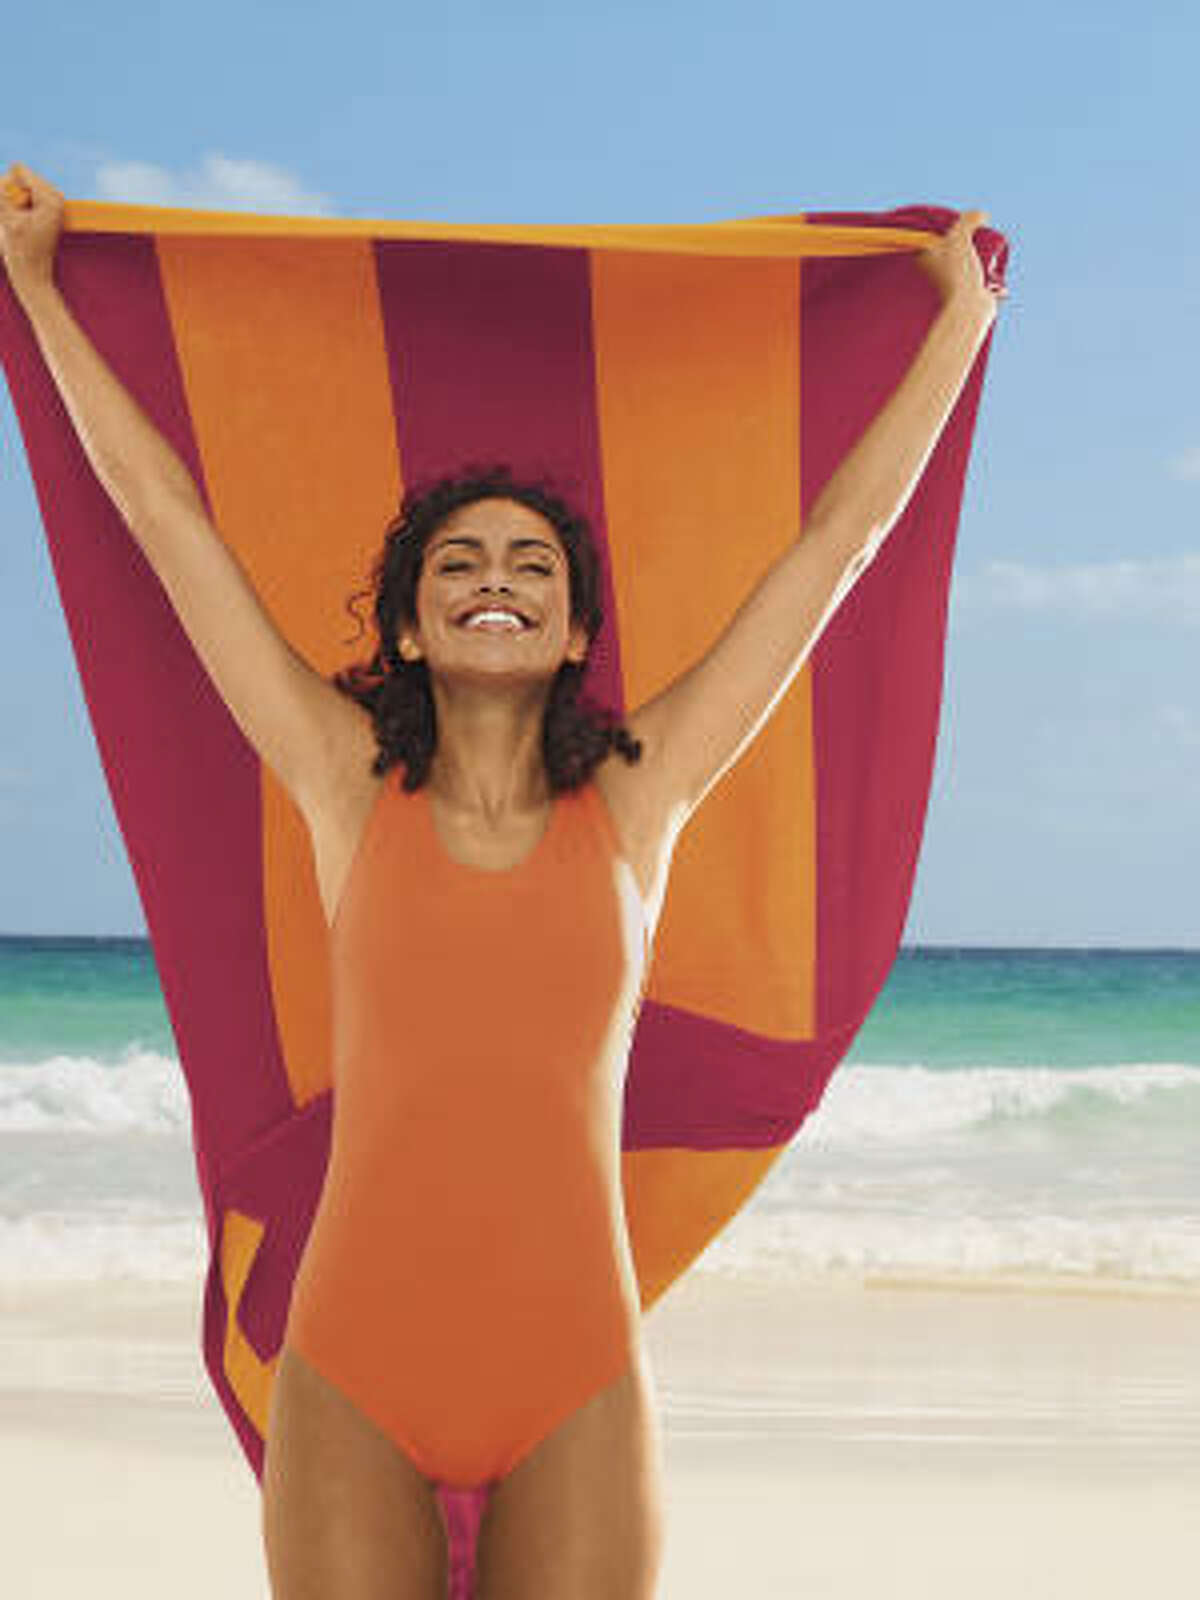 Tugless tank bathing suit, $39.50, and ruby stripe beach towel, $39.50, at Land's End.